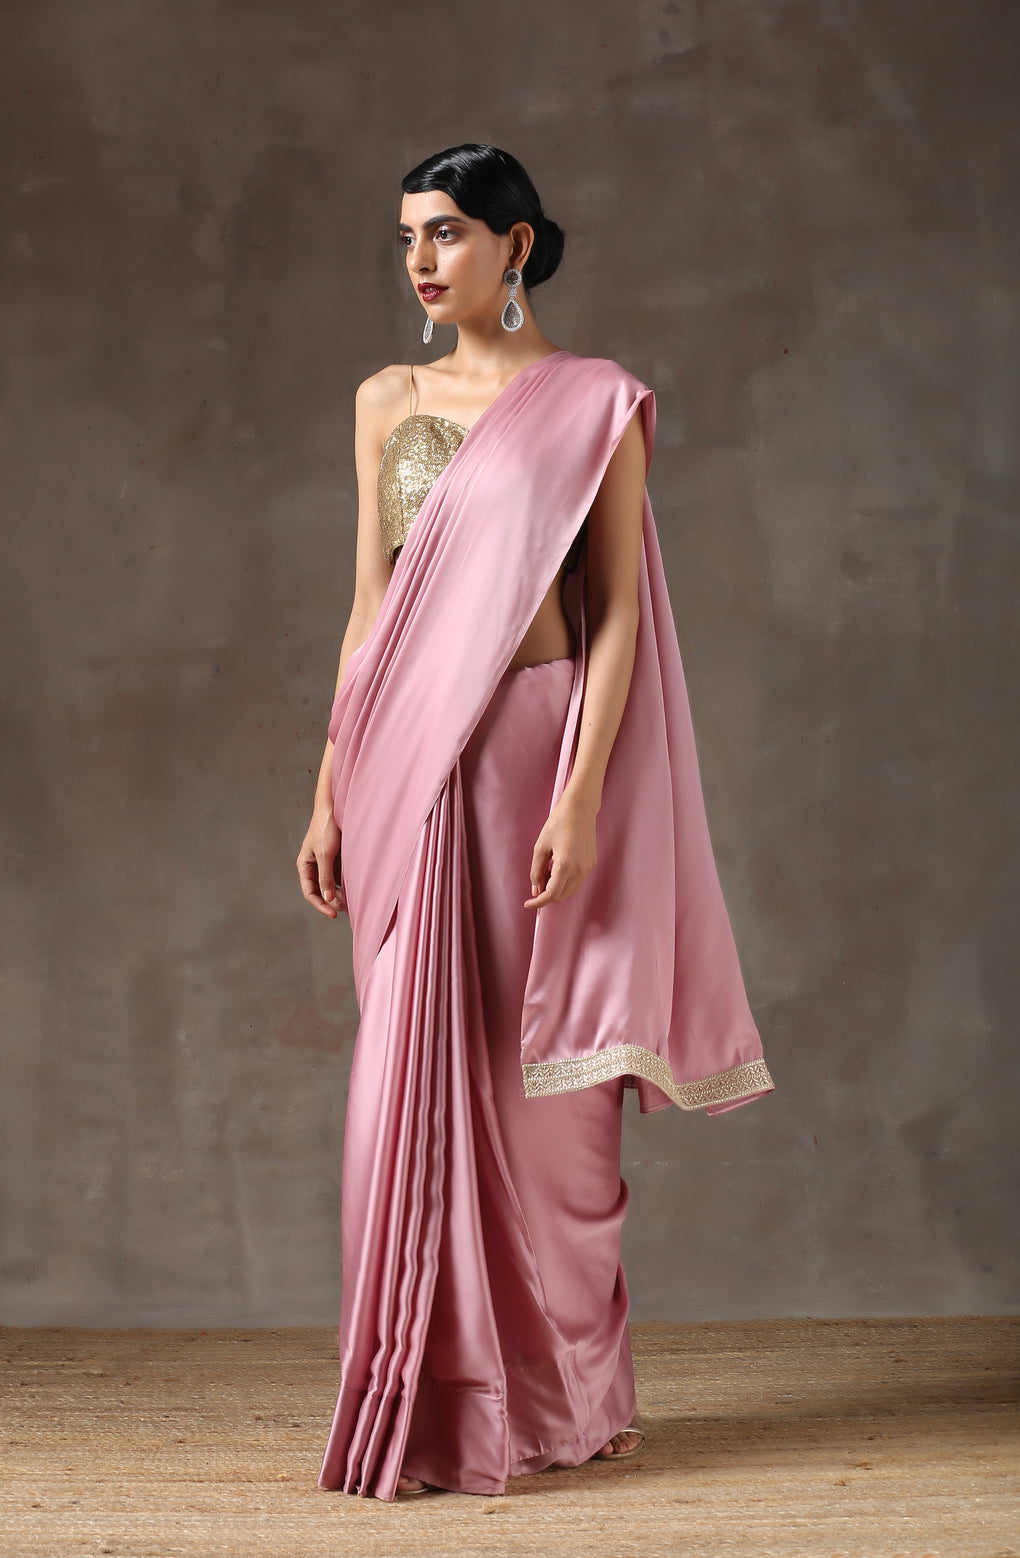 Blush Pink Satin Saree with Handmade Lace